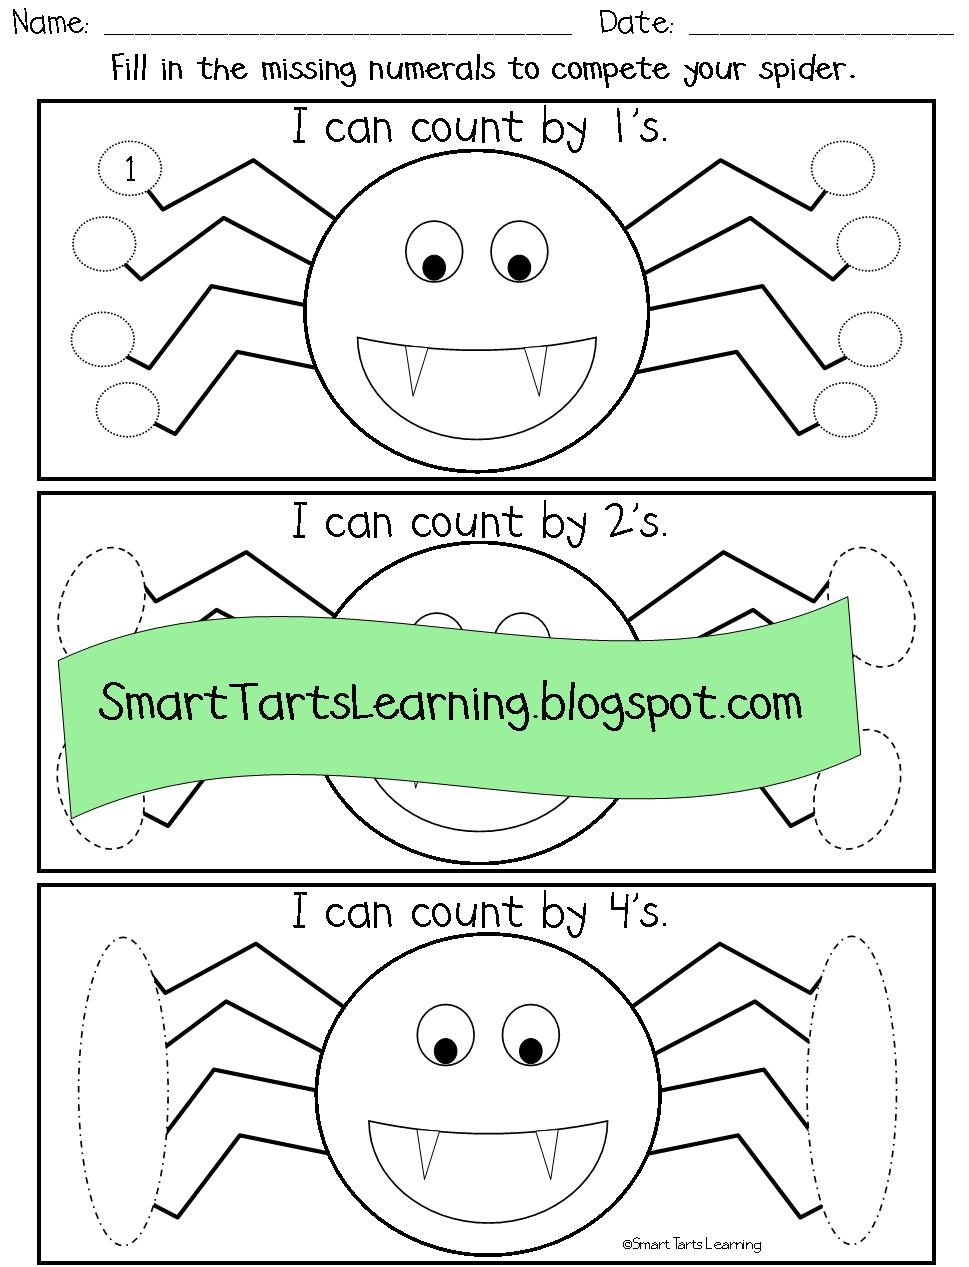 SmartTartsLearning: They Creep, They Crawl, They\'re Spiders!